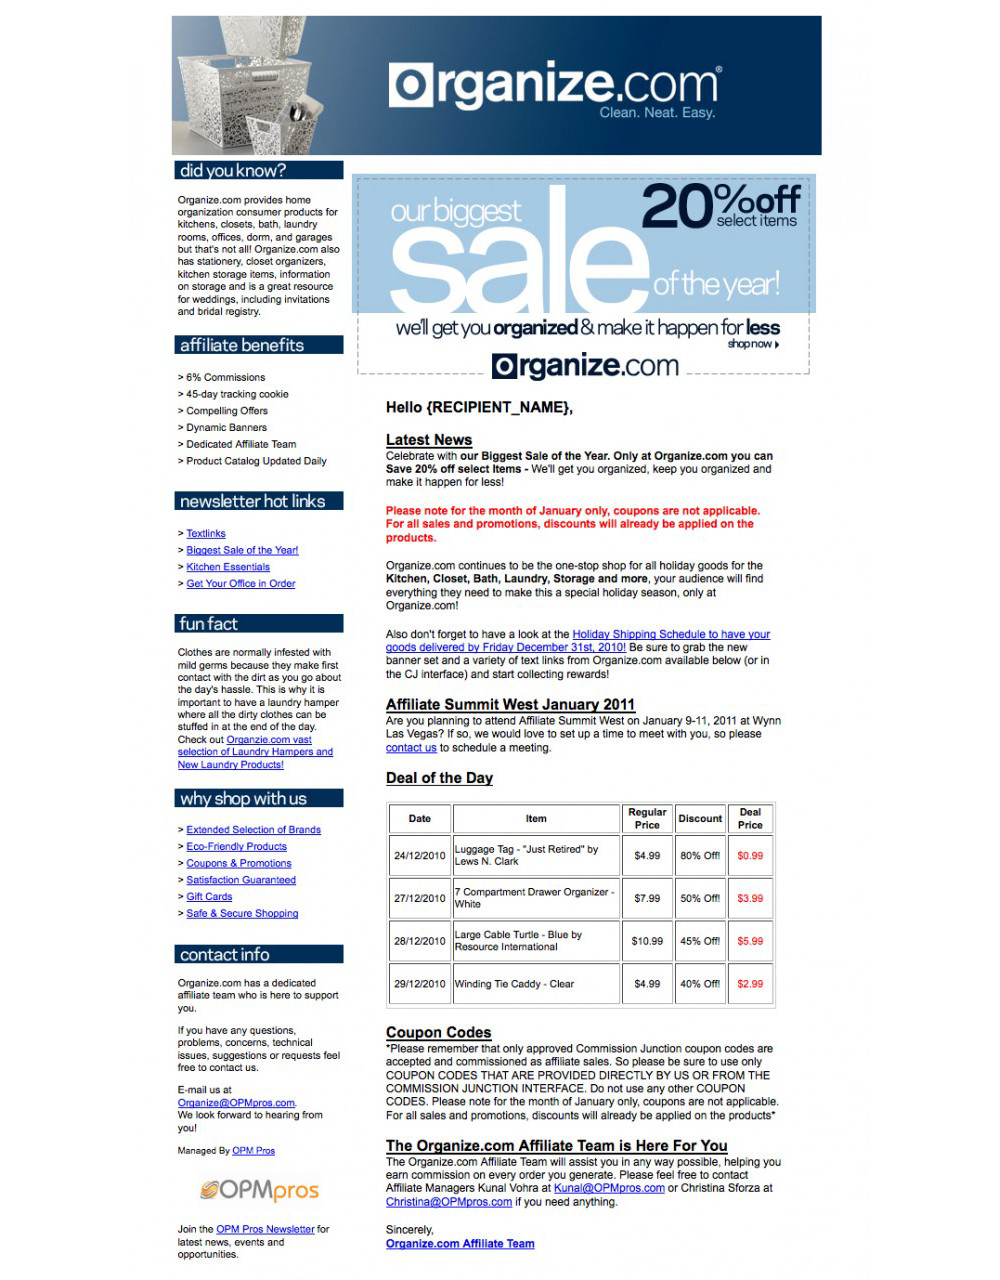 HTML Based Email Template